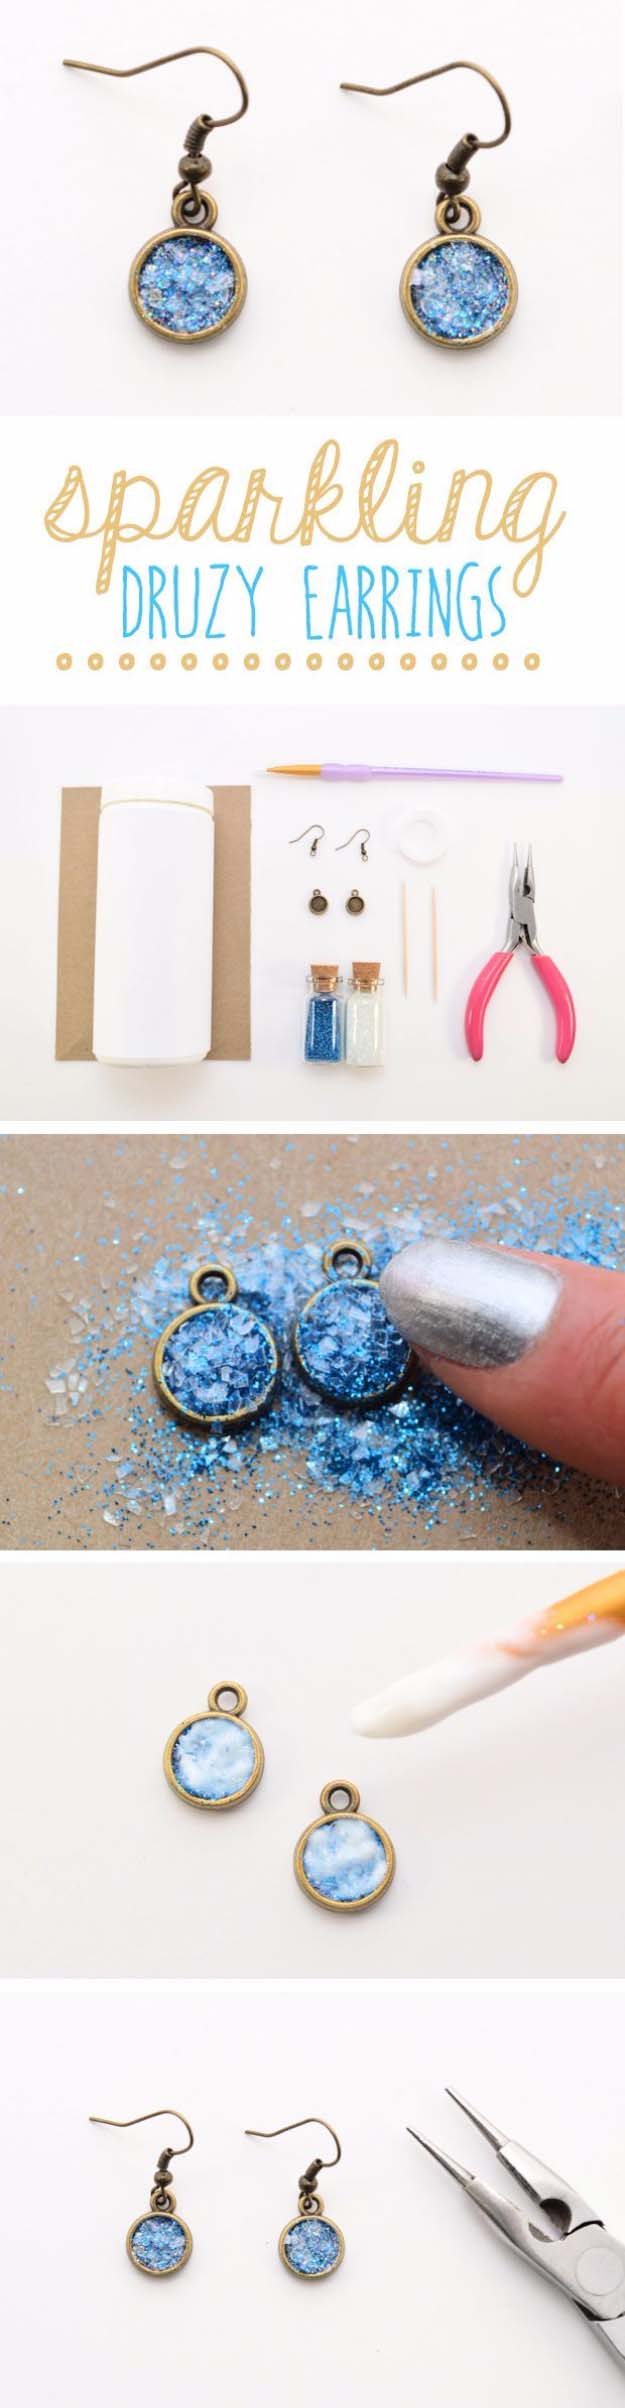 DIY Gifts for Your Girlfriend and Cool Homemade Gift Ideas for Her   Easy Creative DIY Projects and Tutorials for Christmas, Birthday and Anniversary Gifts for Mom, Sister, Aunt, Teacher or Friends   Sparklng Glitter Druzy Earrings for Cool Homemade DIY Fashion #diygifts #diyideas